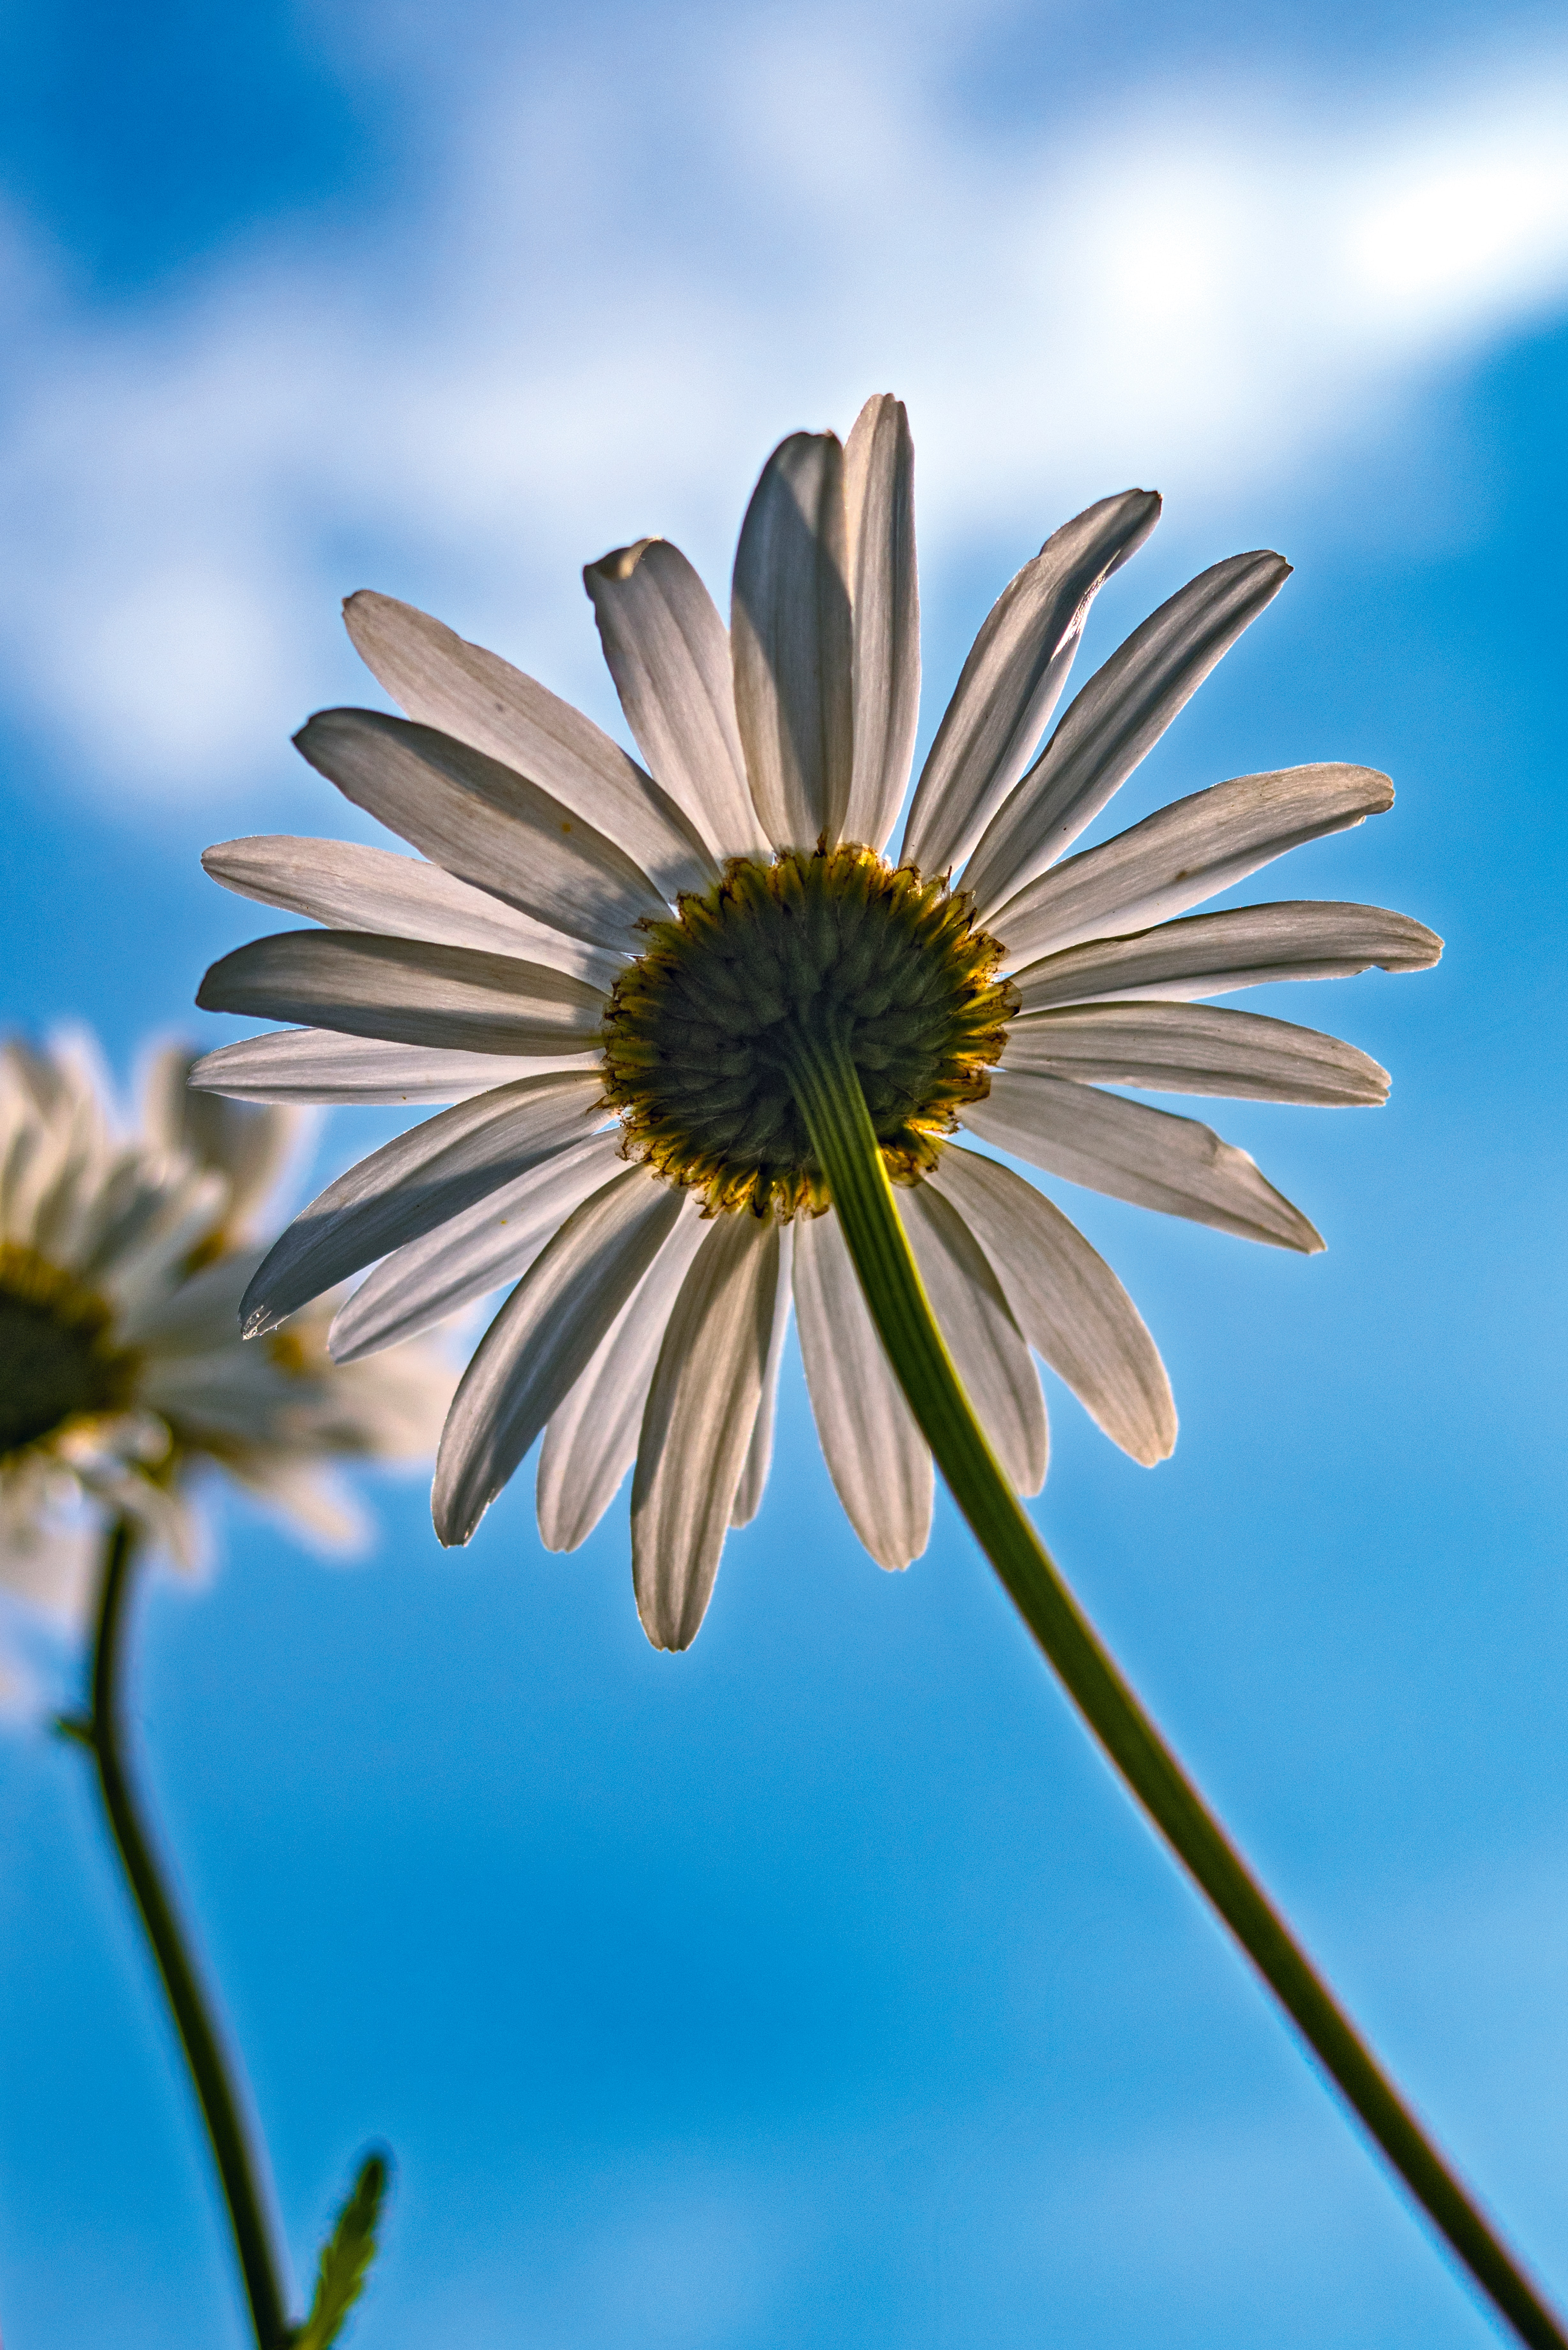 120506 download wallpaper Flowers, Chamomile, Camomile, Petals, Flower, Sky screensavers and pictures for free